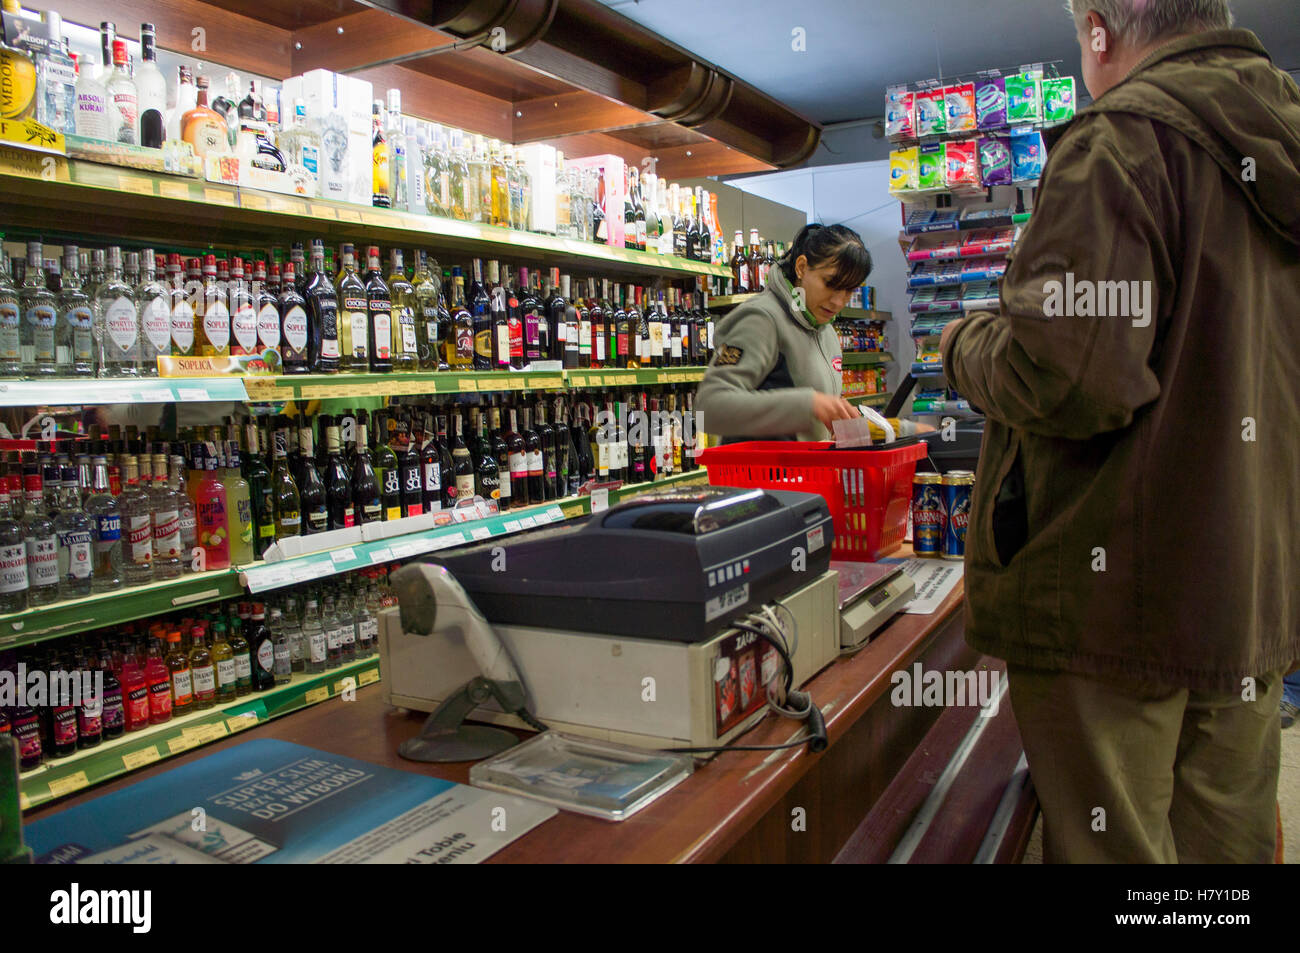 shopping liquor store shop soplica vodka alcohol seller stock photo shopping liquor store shop soplica vodka alcohol seller s assistant cash desk